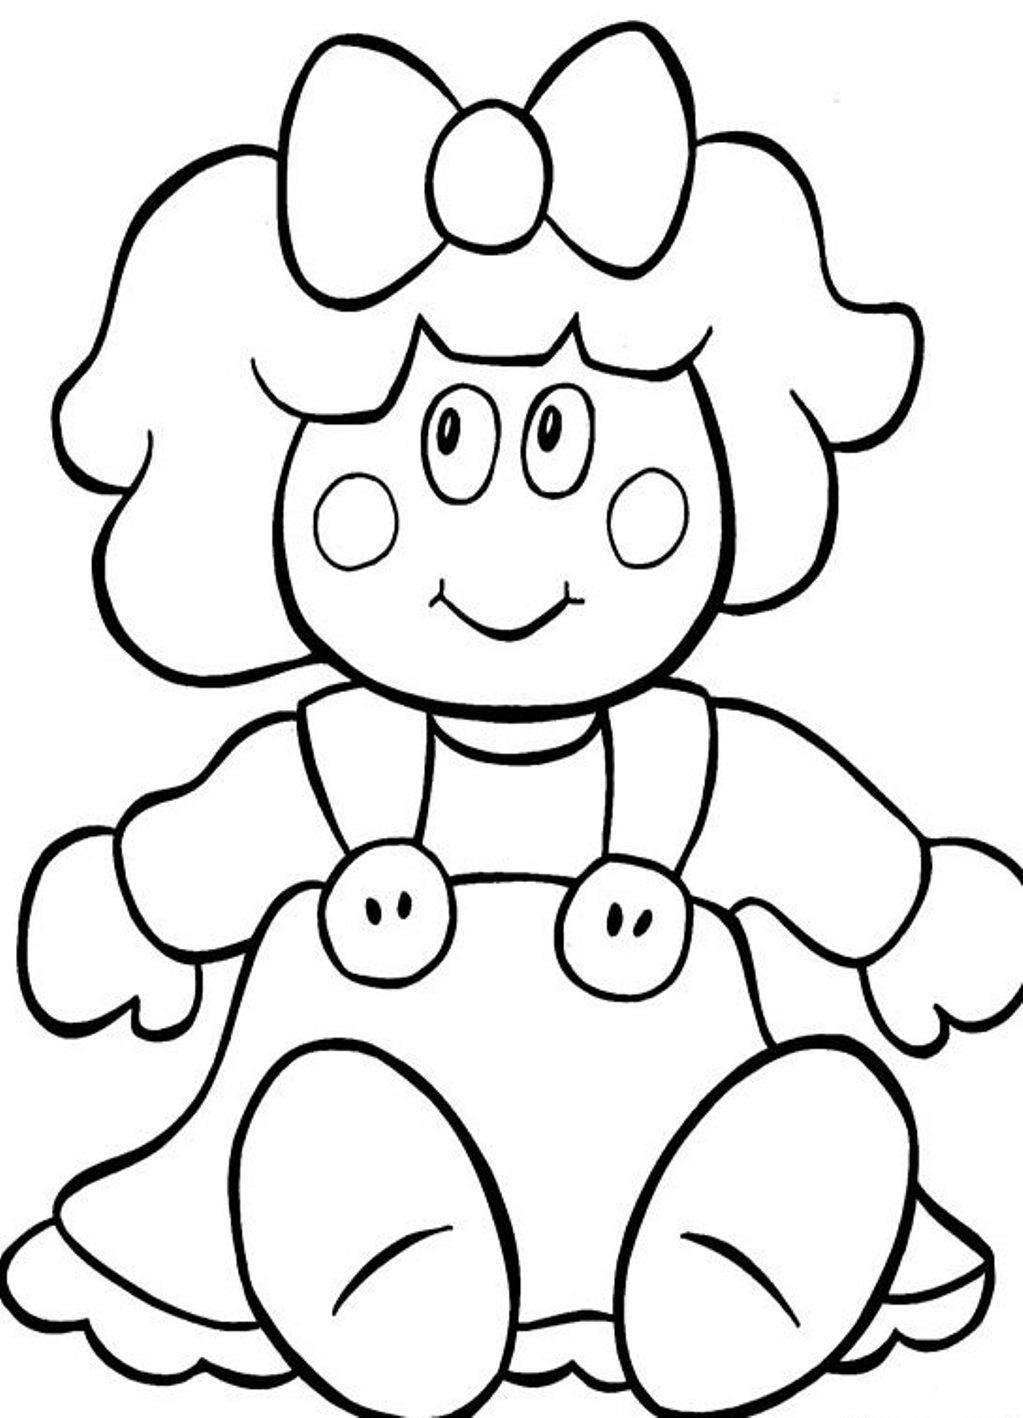 free coloring pages for kids 9 free coloring pages for kids of all ages chicago parent for coloring kids free pages